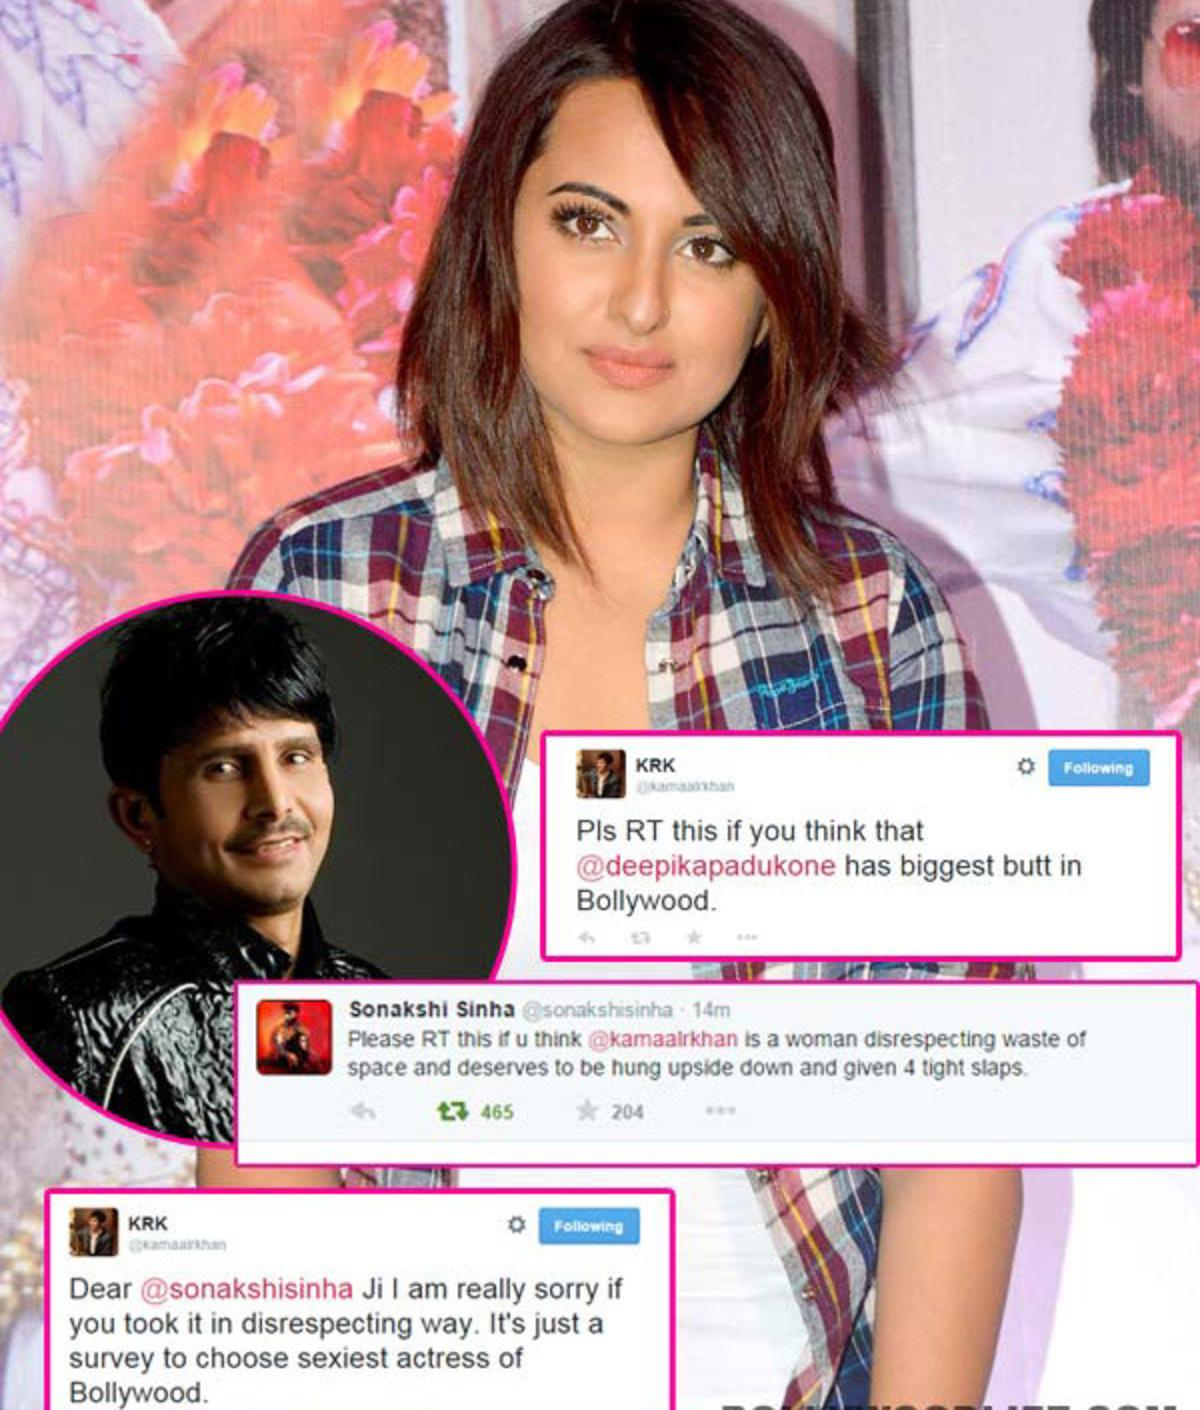 Kamaal R Khan S Most Controversial Tweets Explore twitter profiles and statistics with the best experience and download twitter videos and photos | twaku. kamaal r khan s most controversial tweets